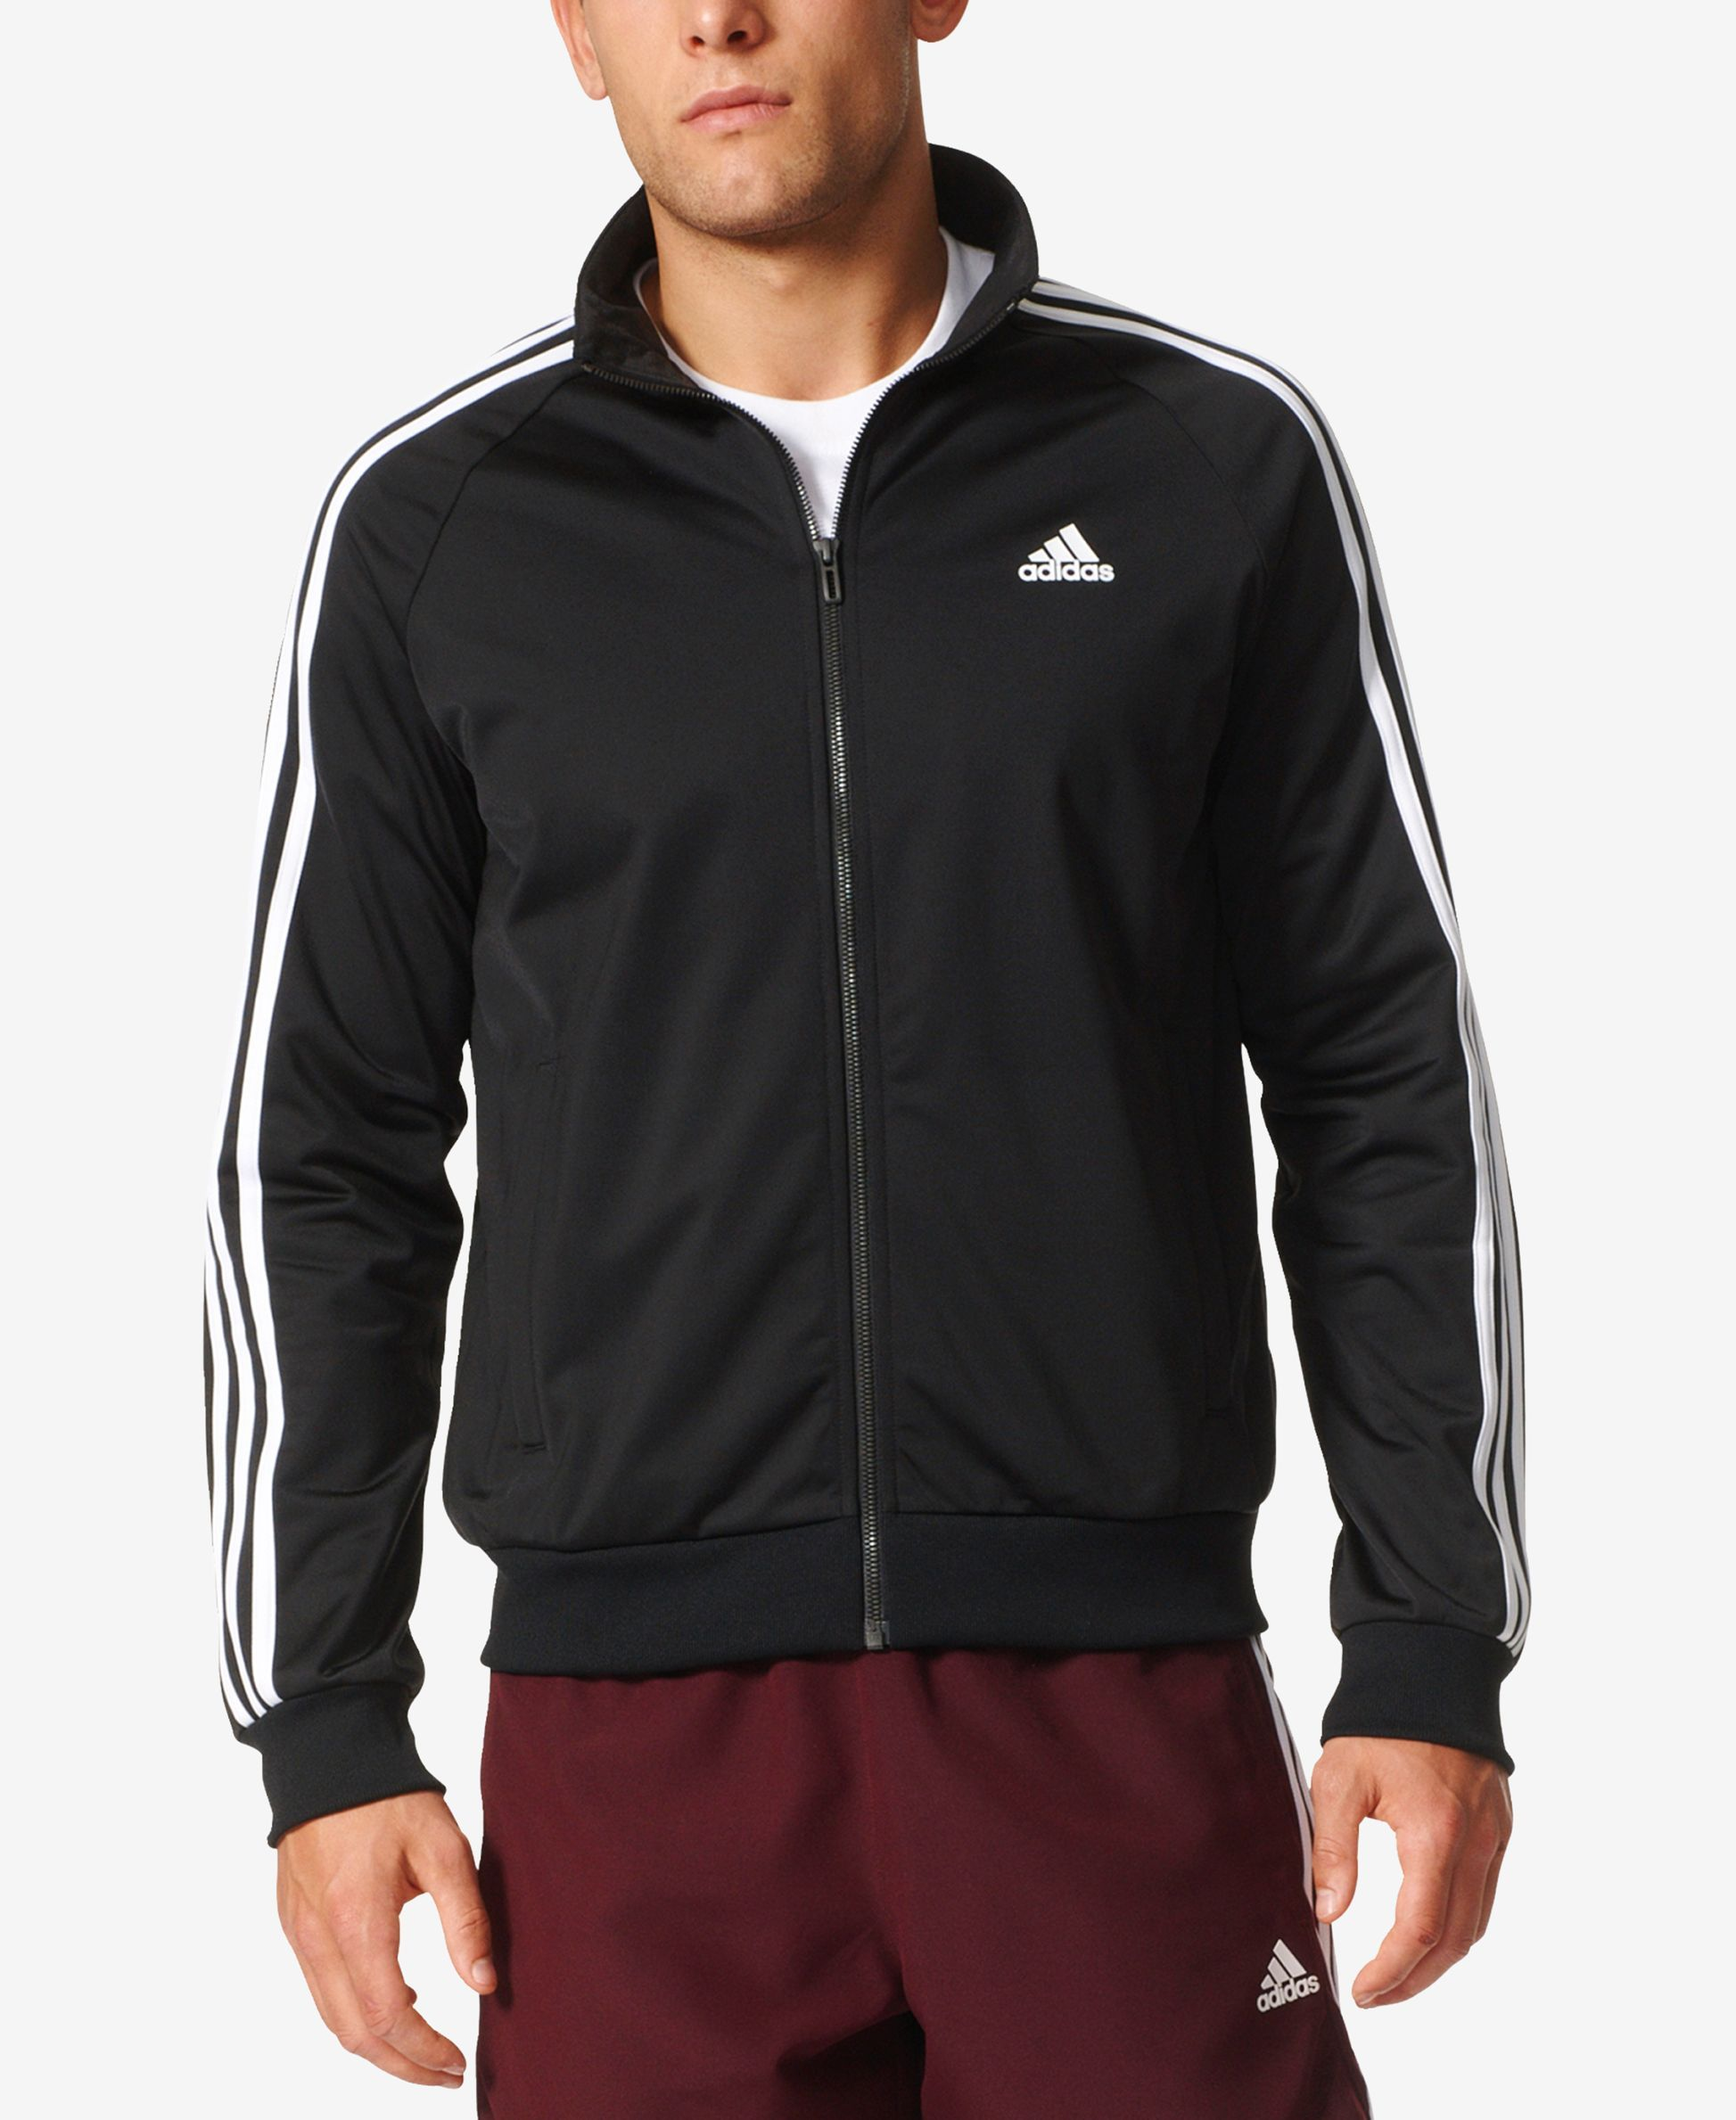 adidas Men's Essential Tricot Track Jacket | Adidas men